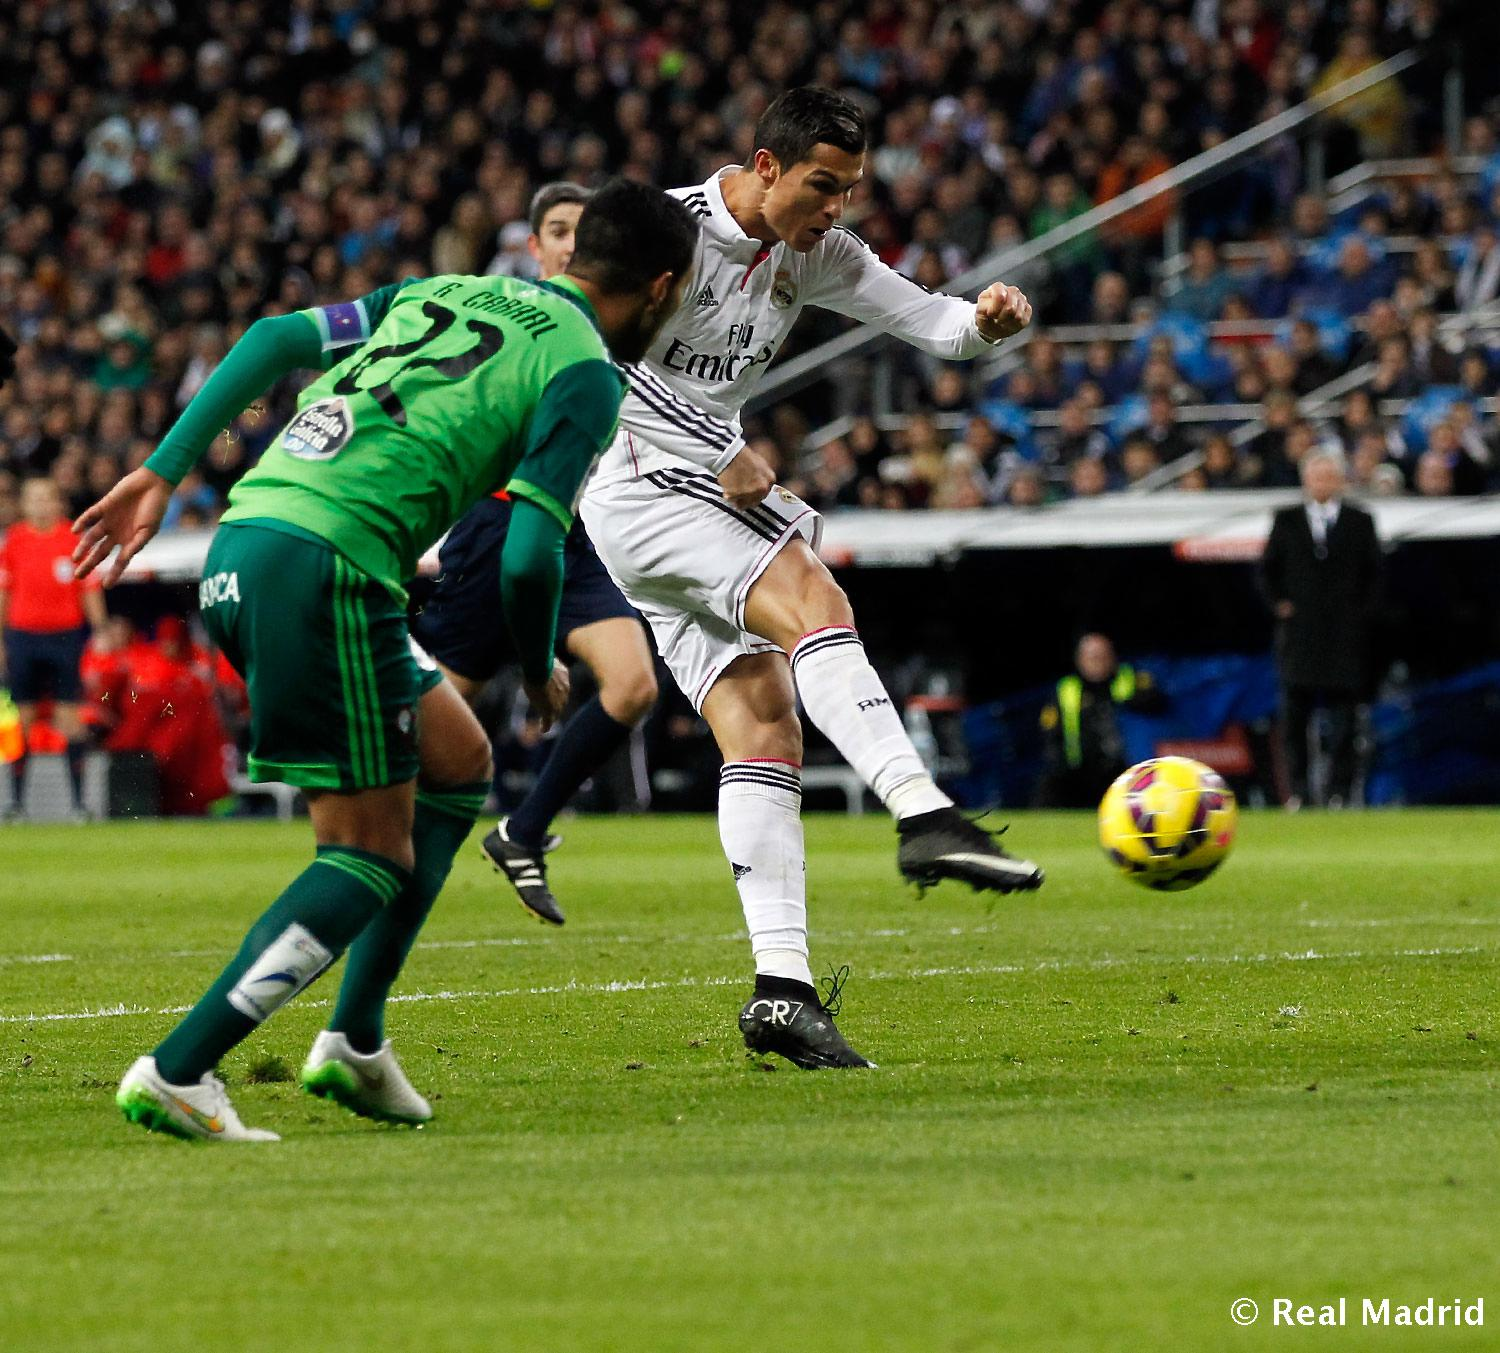 Real Madrid - Real Madrid - Celta - 06-12-2014